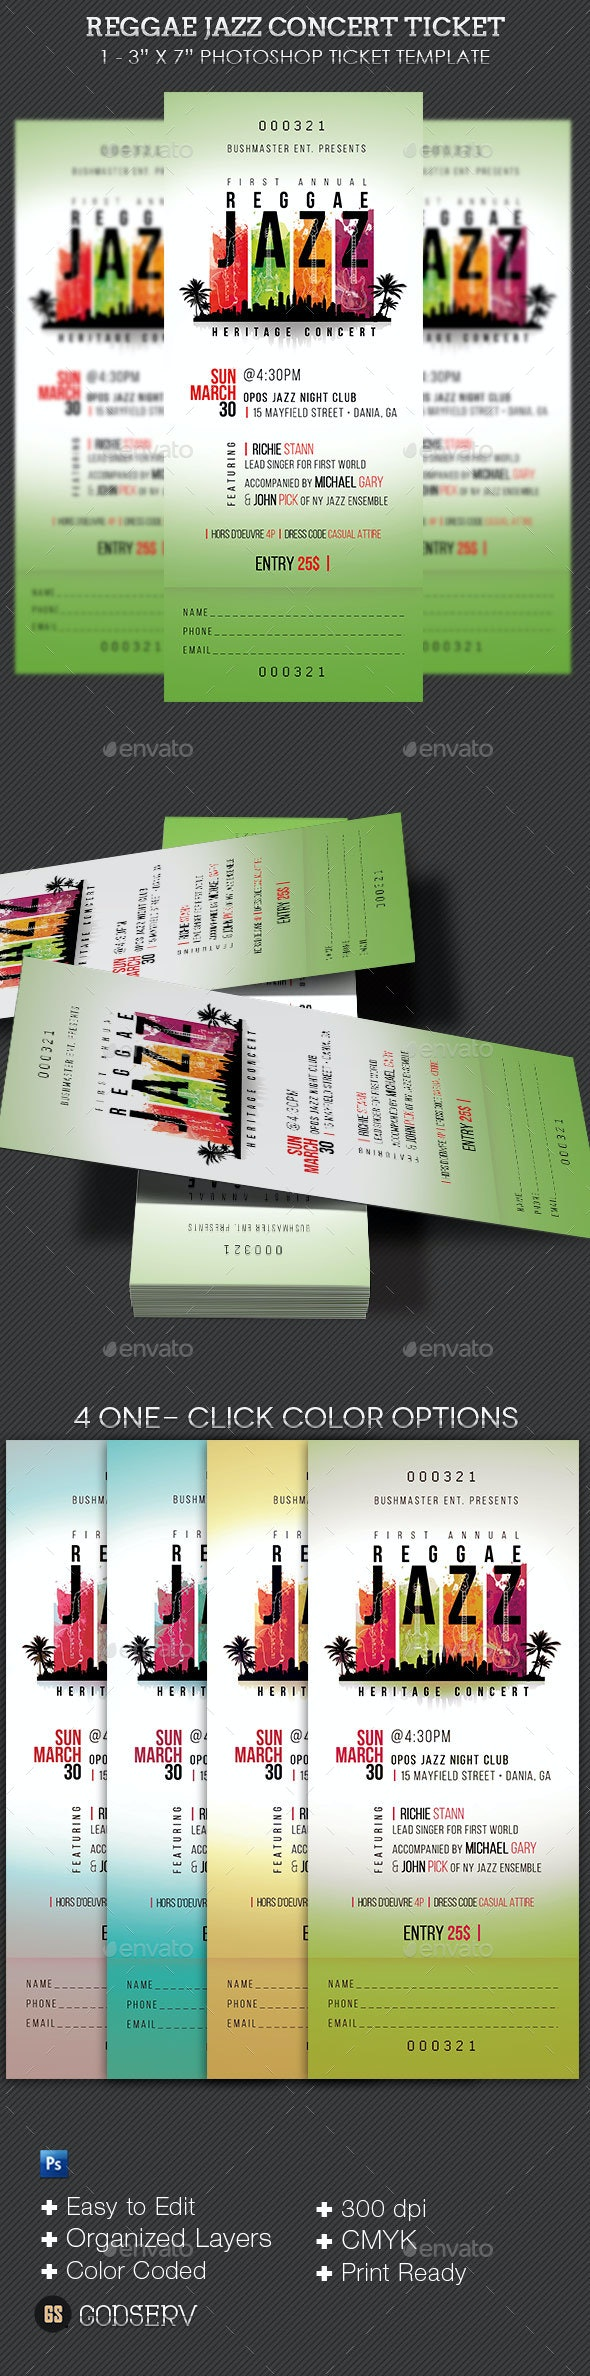 Reggae Jazz Event Ticket Template - Miscellaneous Print Templates